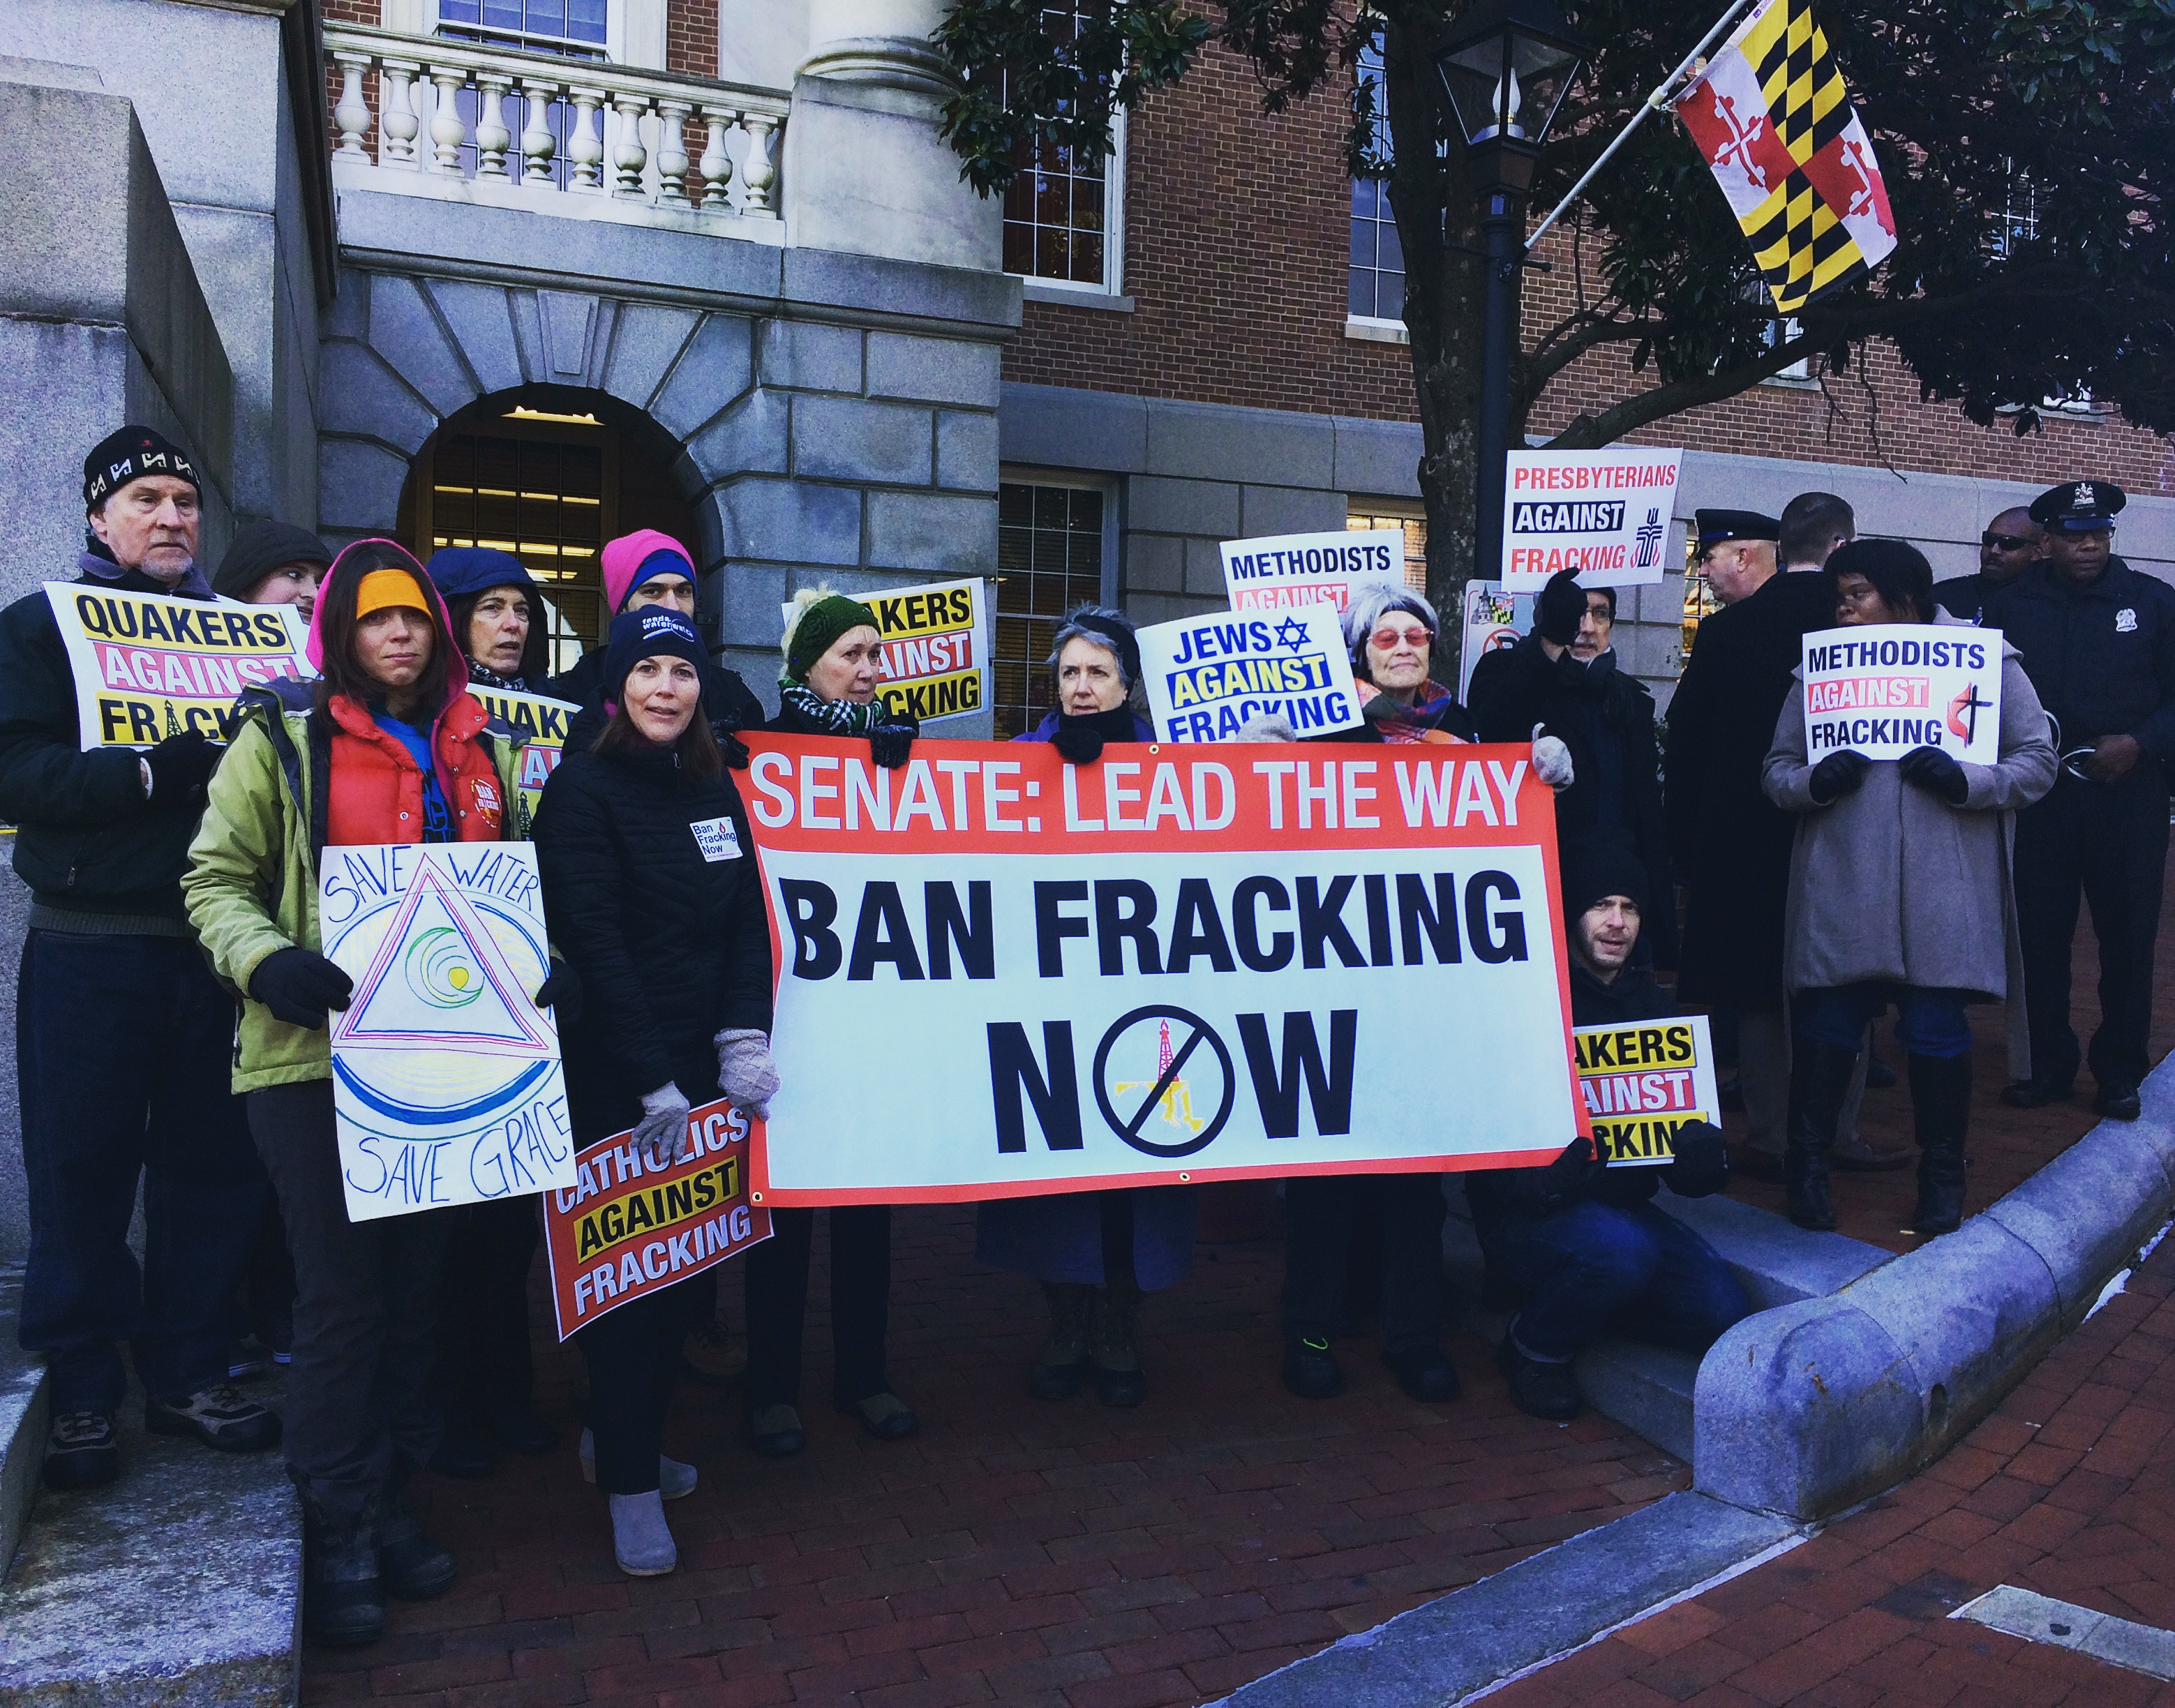 Various groups come together to protest fracking.